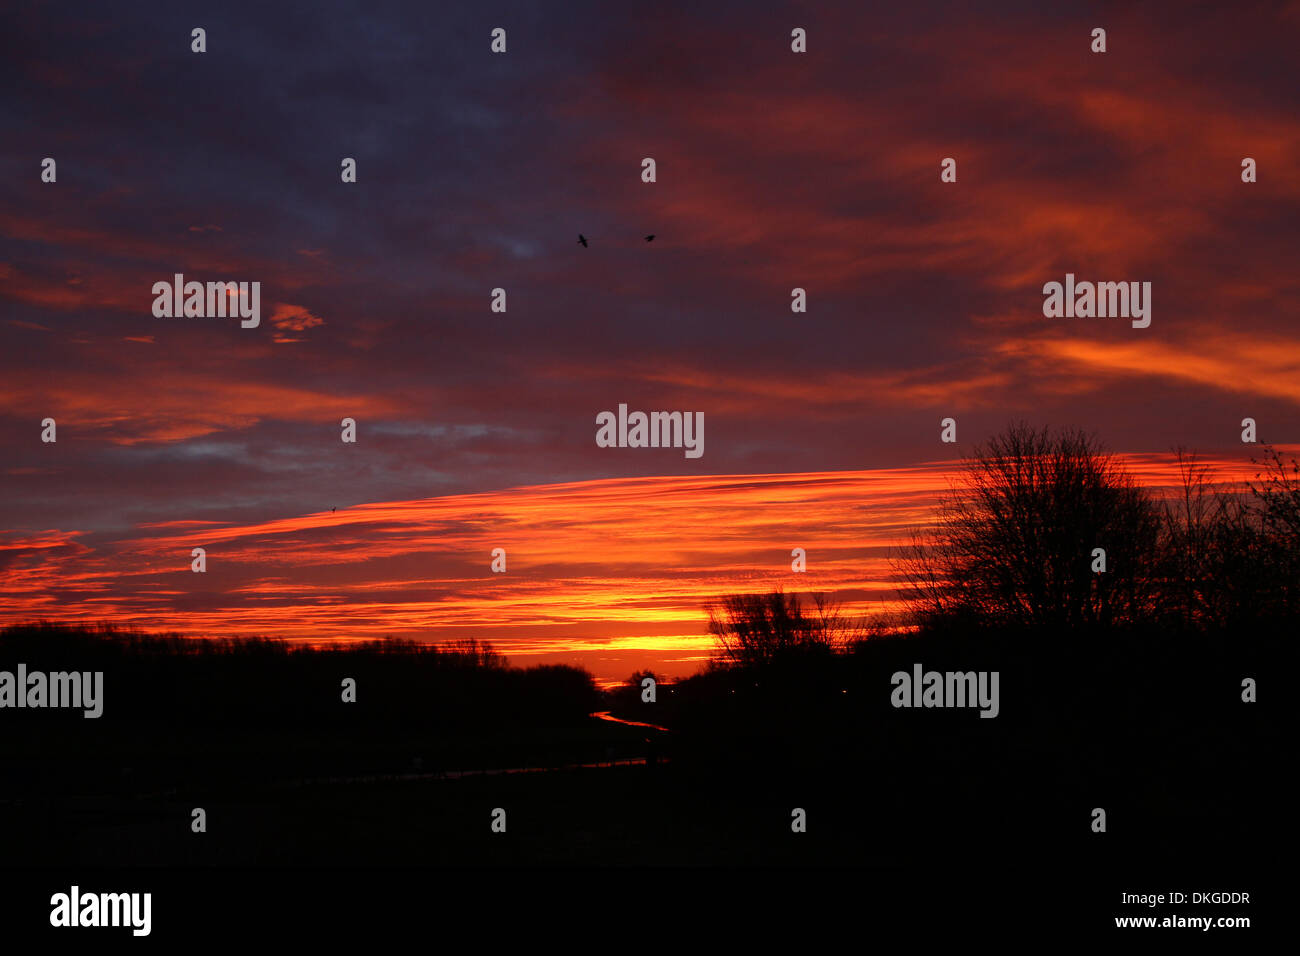 Peterborough, UK. 05th Dec, 2013. Red sky in the morning is said to be shepherds warning, as the sky looks like Stock Photo